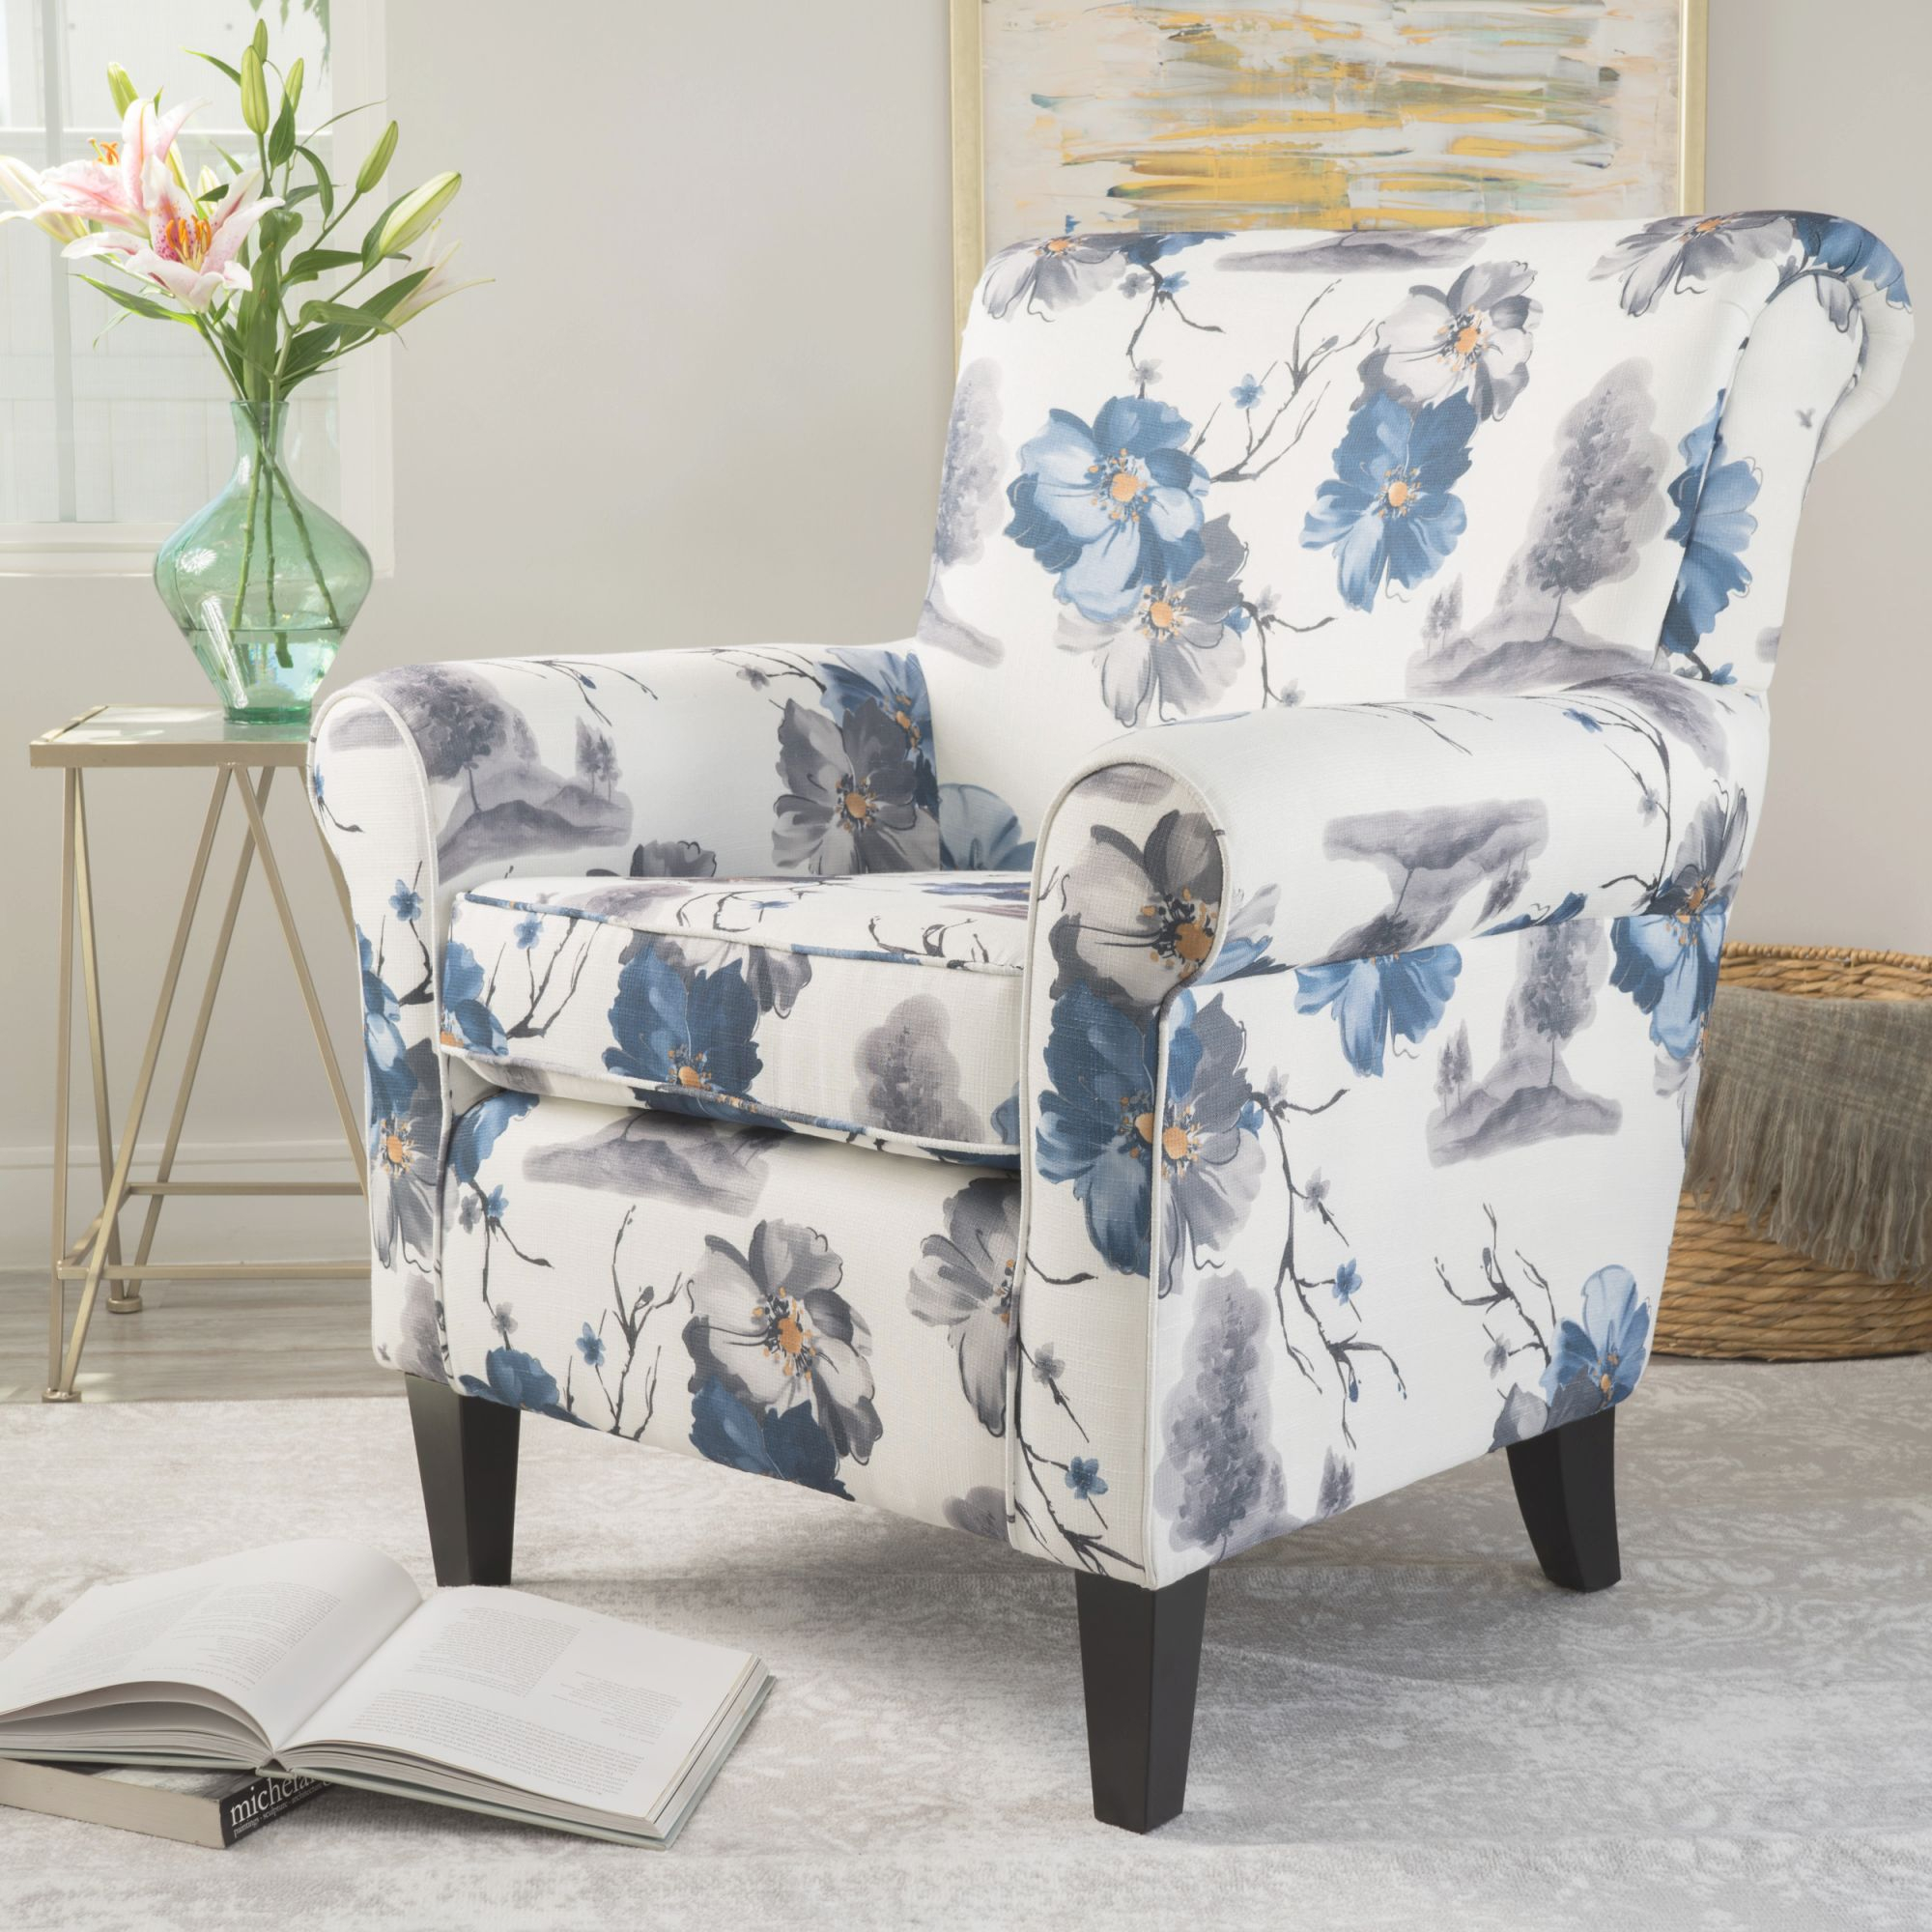 Details About Blue & White Floral Pattern Modern Fabric Club Chair Lounge Living Room Bedroom inside Floral Living Room Furniture